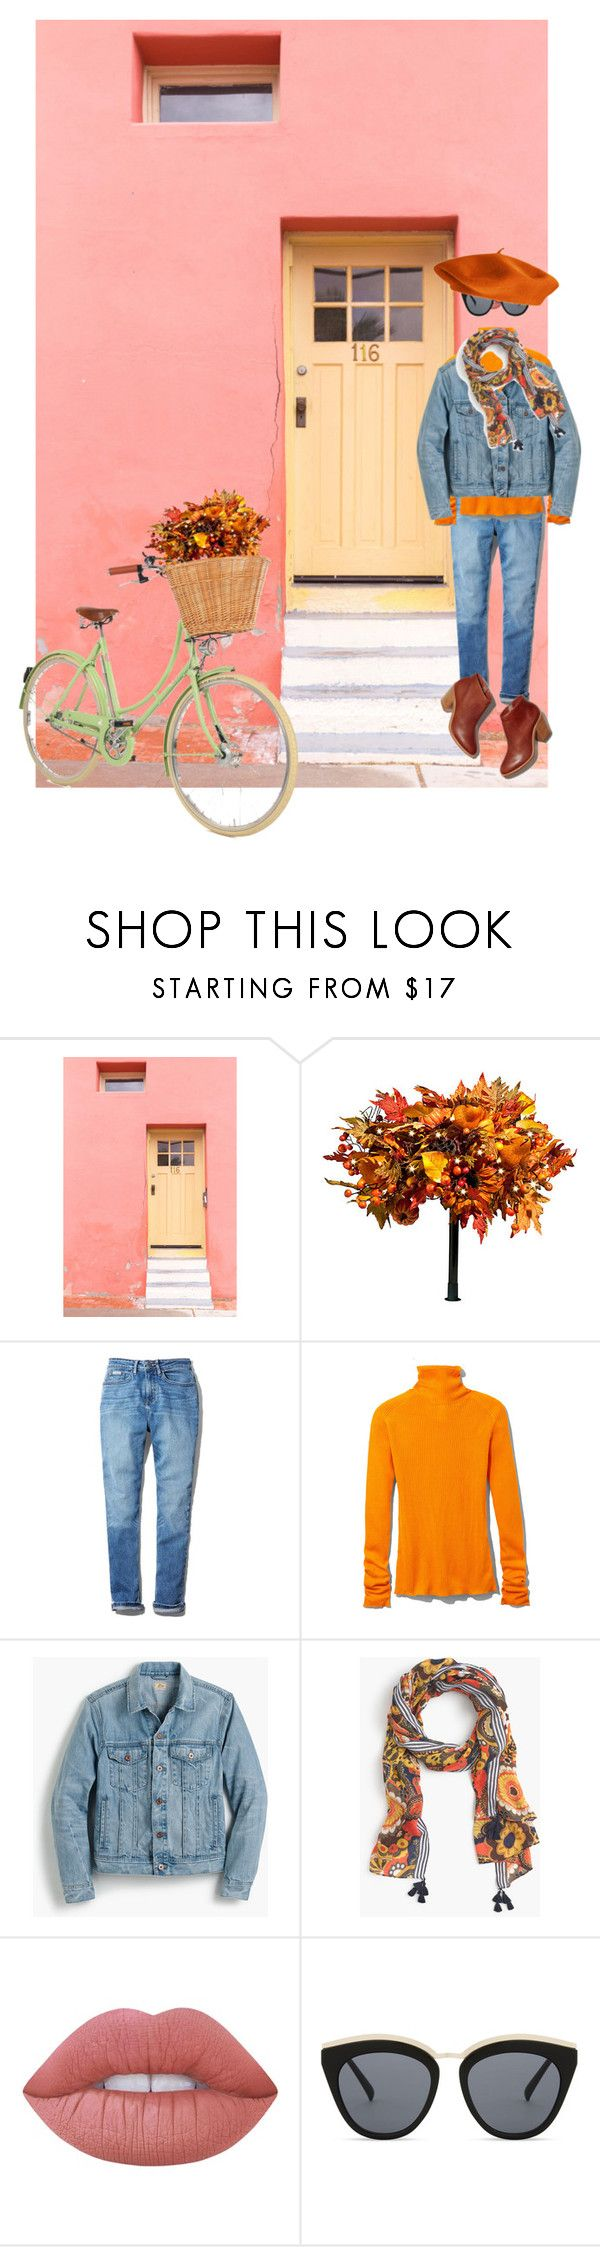 """Fall Florals on a Sunday Bike Ride"" by onesweetthing ❤ liked on Polyvore featuring Improvements, Calvin Klein, Victoria Beckham, J.Crew, Lime Crime, Le Specs, MyStyle, CalvinKlein, fallflorals and goop"